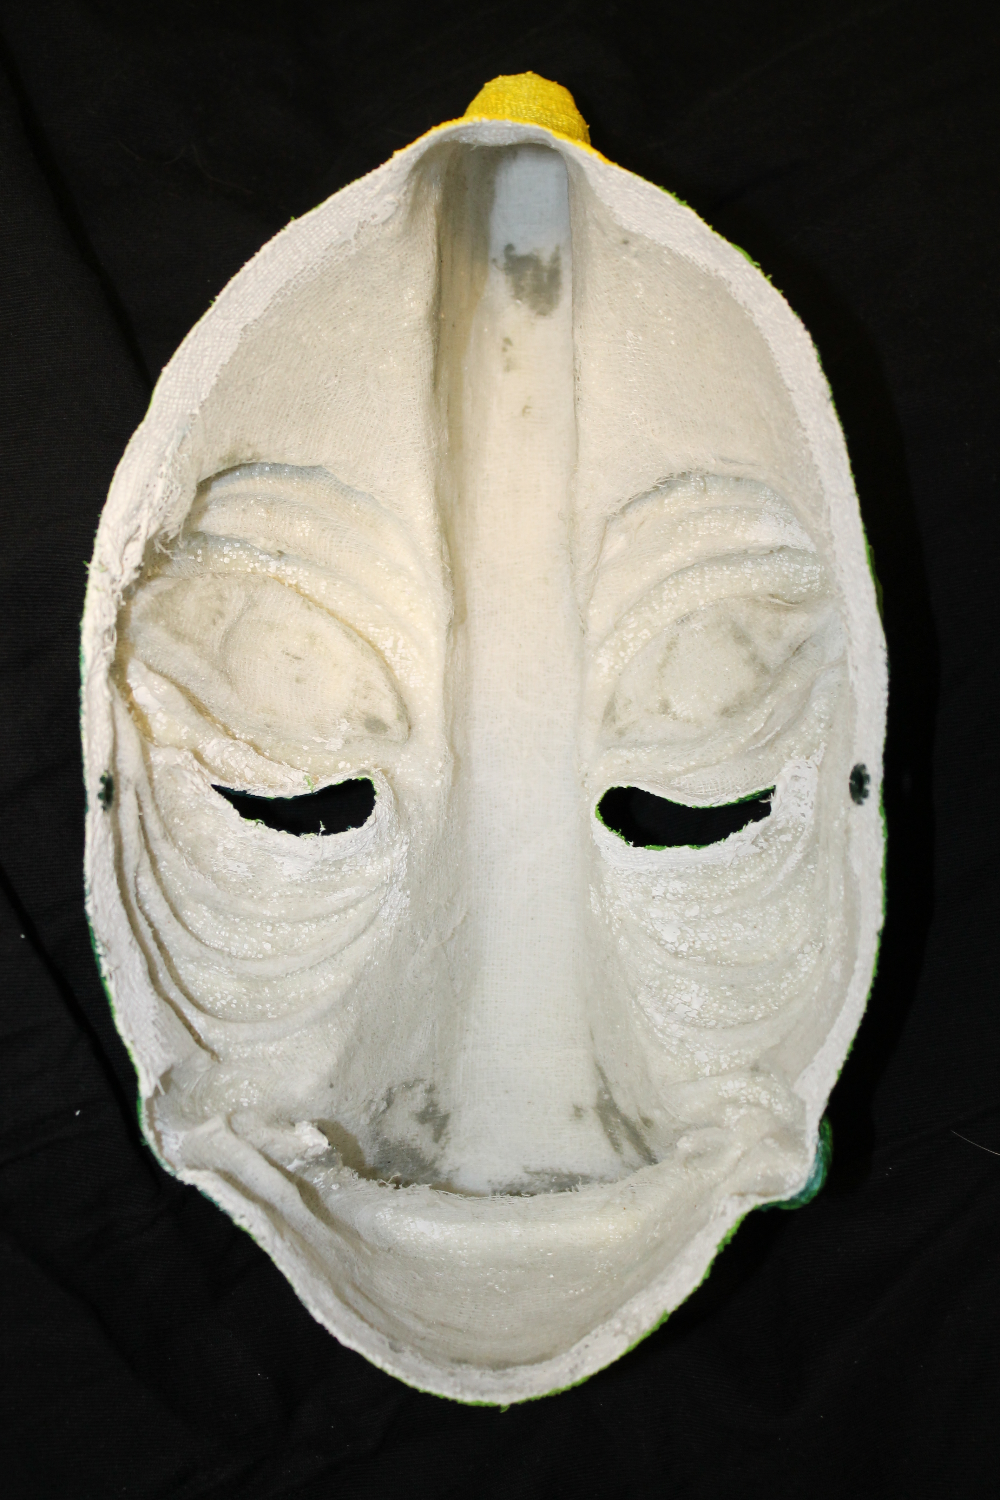 Interior of Mask